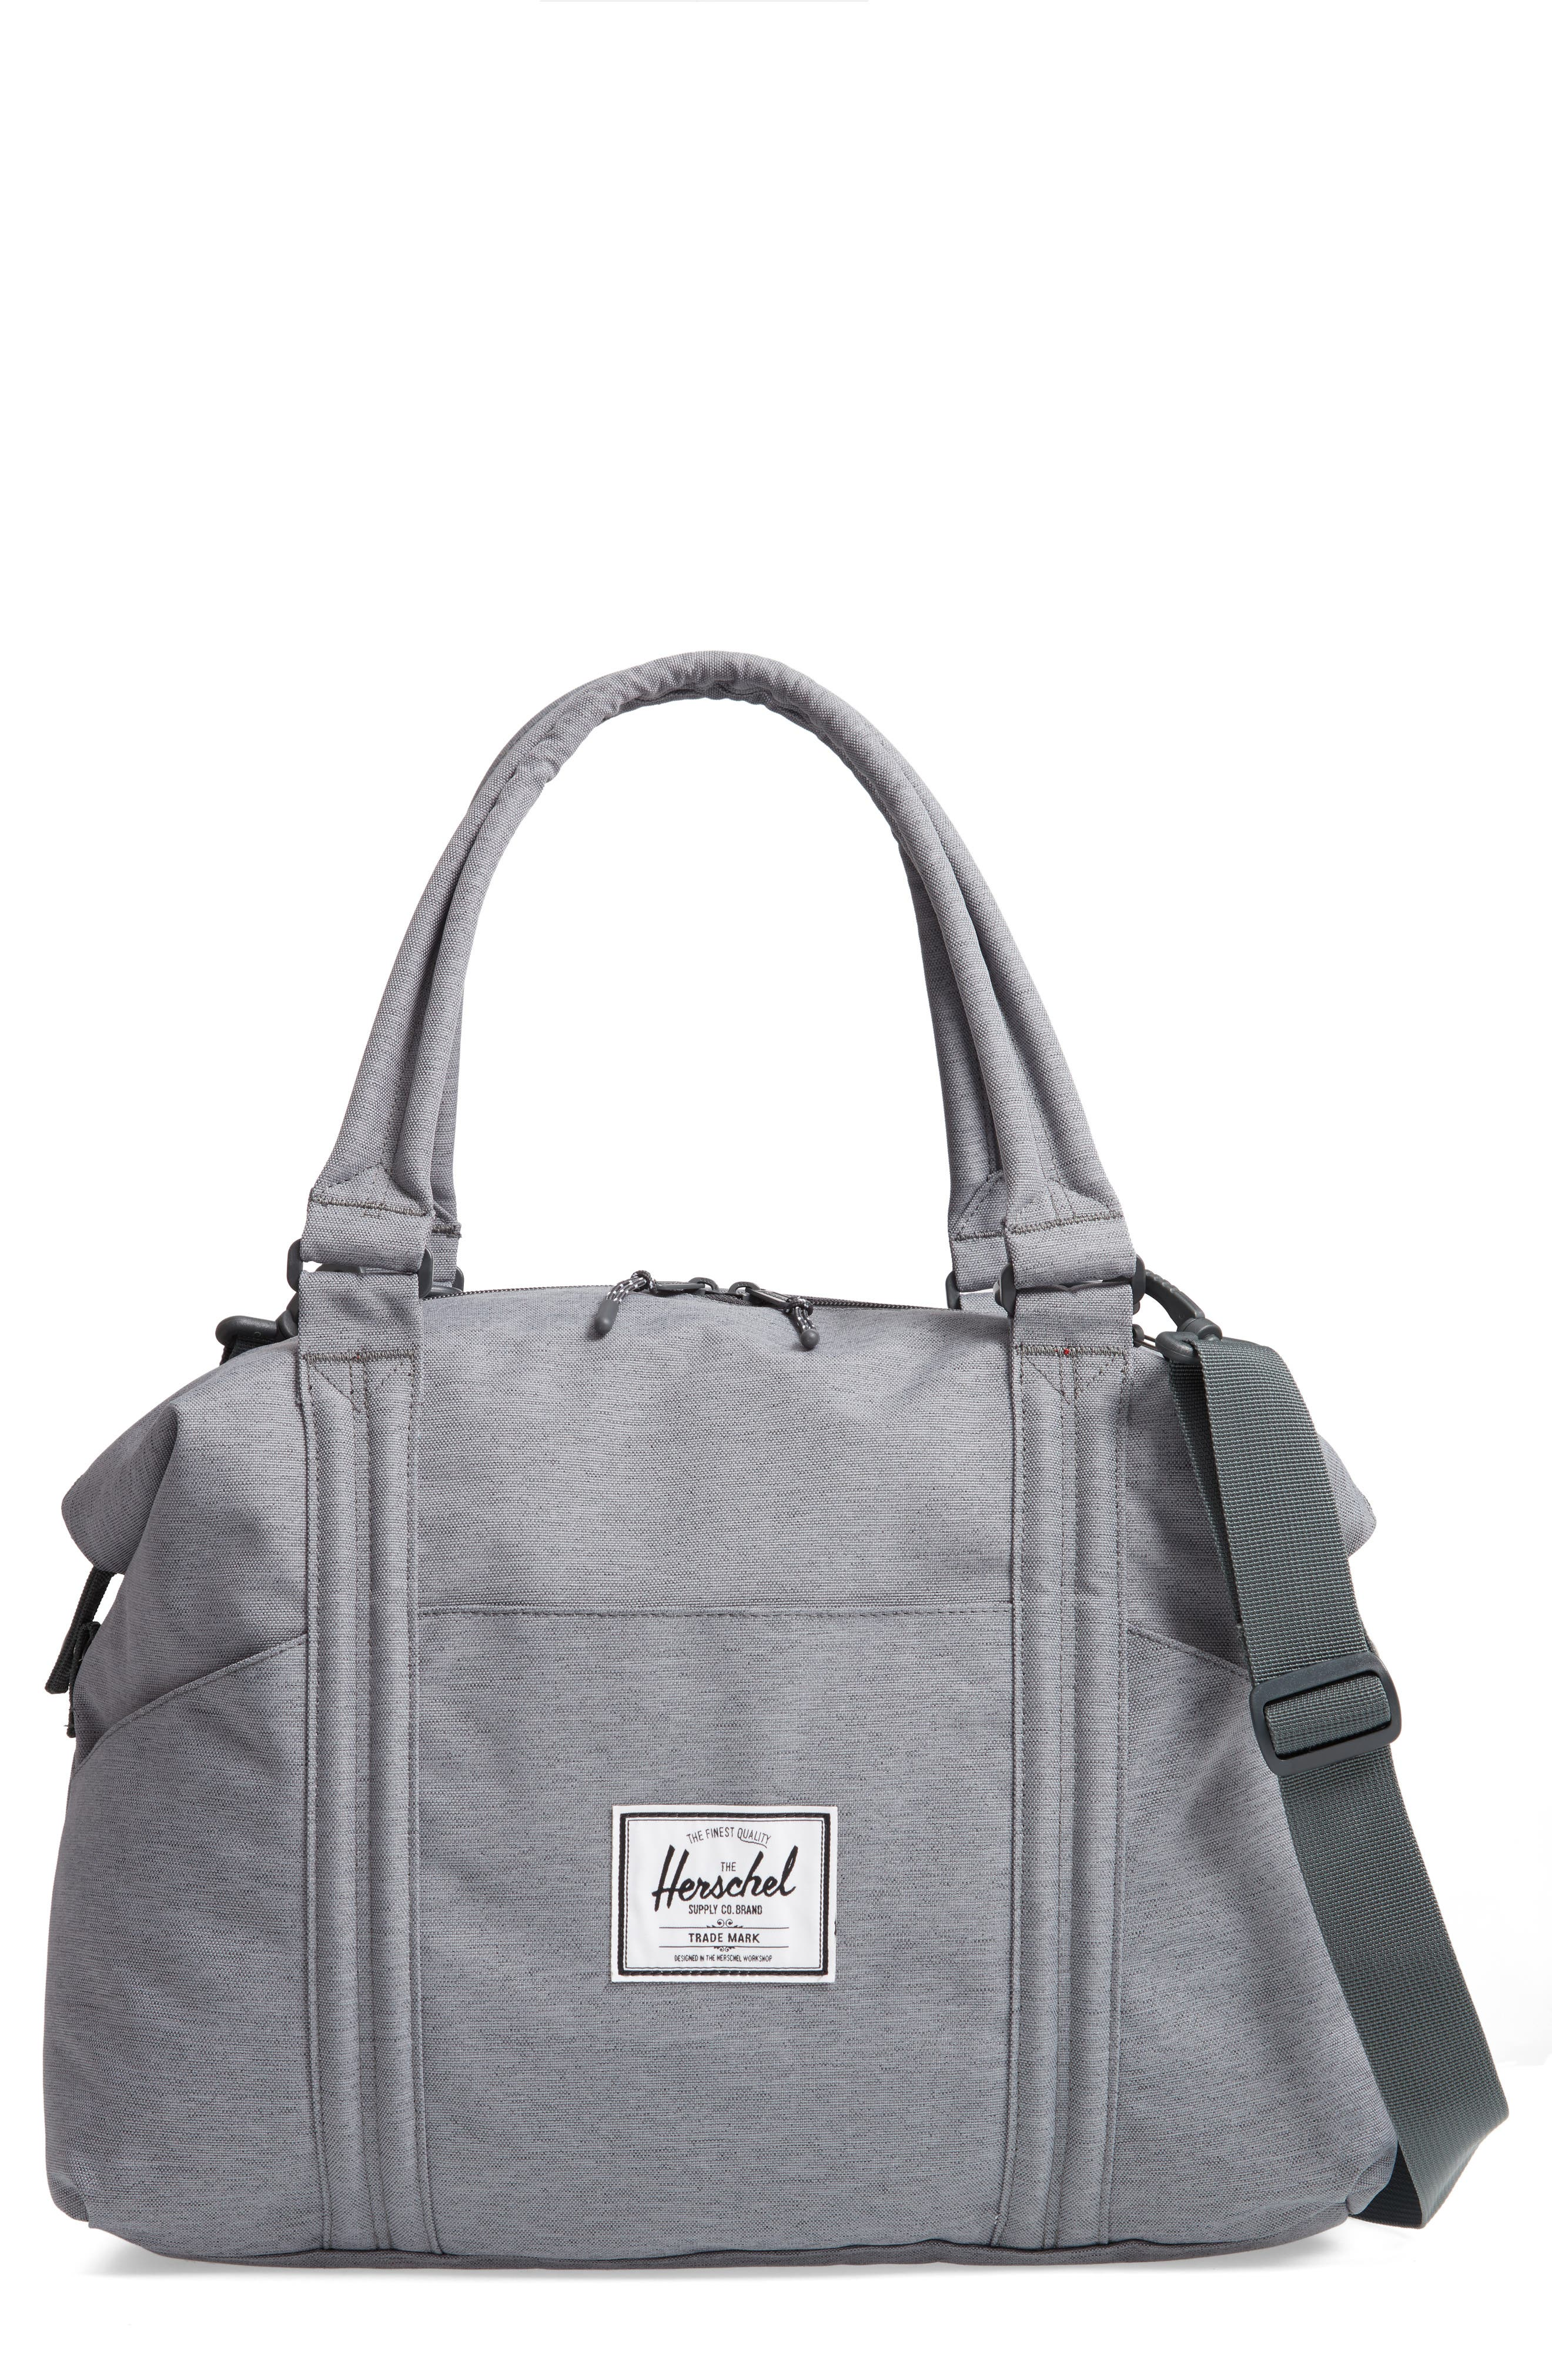 Strand Sprout Diaper Bag,                             Main thumbnail 1, color,                             Mid Grey Crosshatch